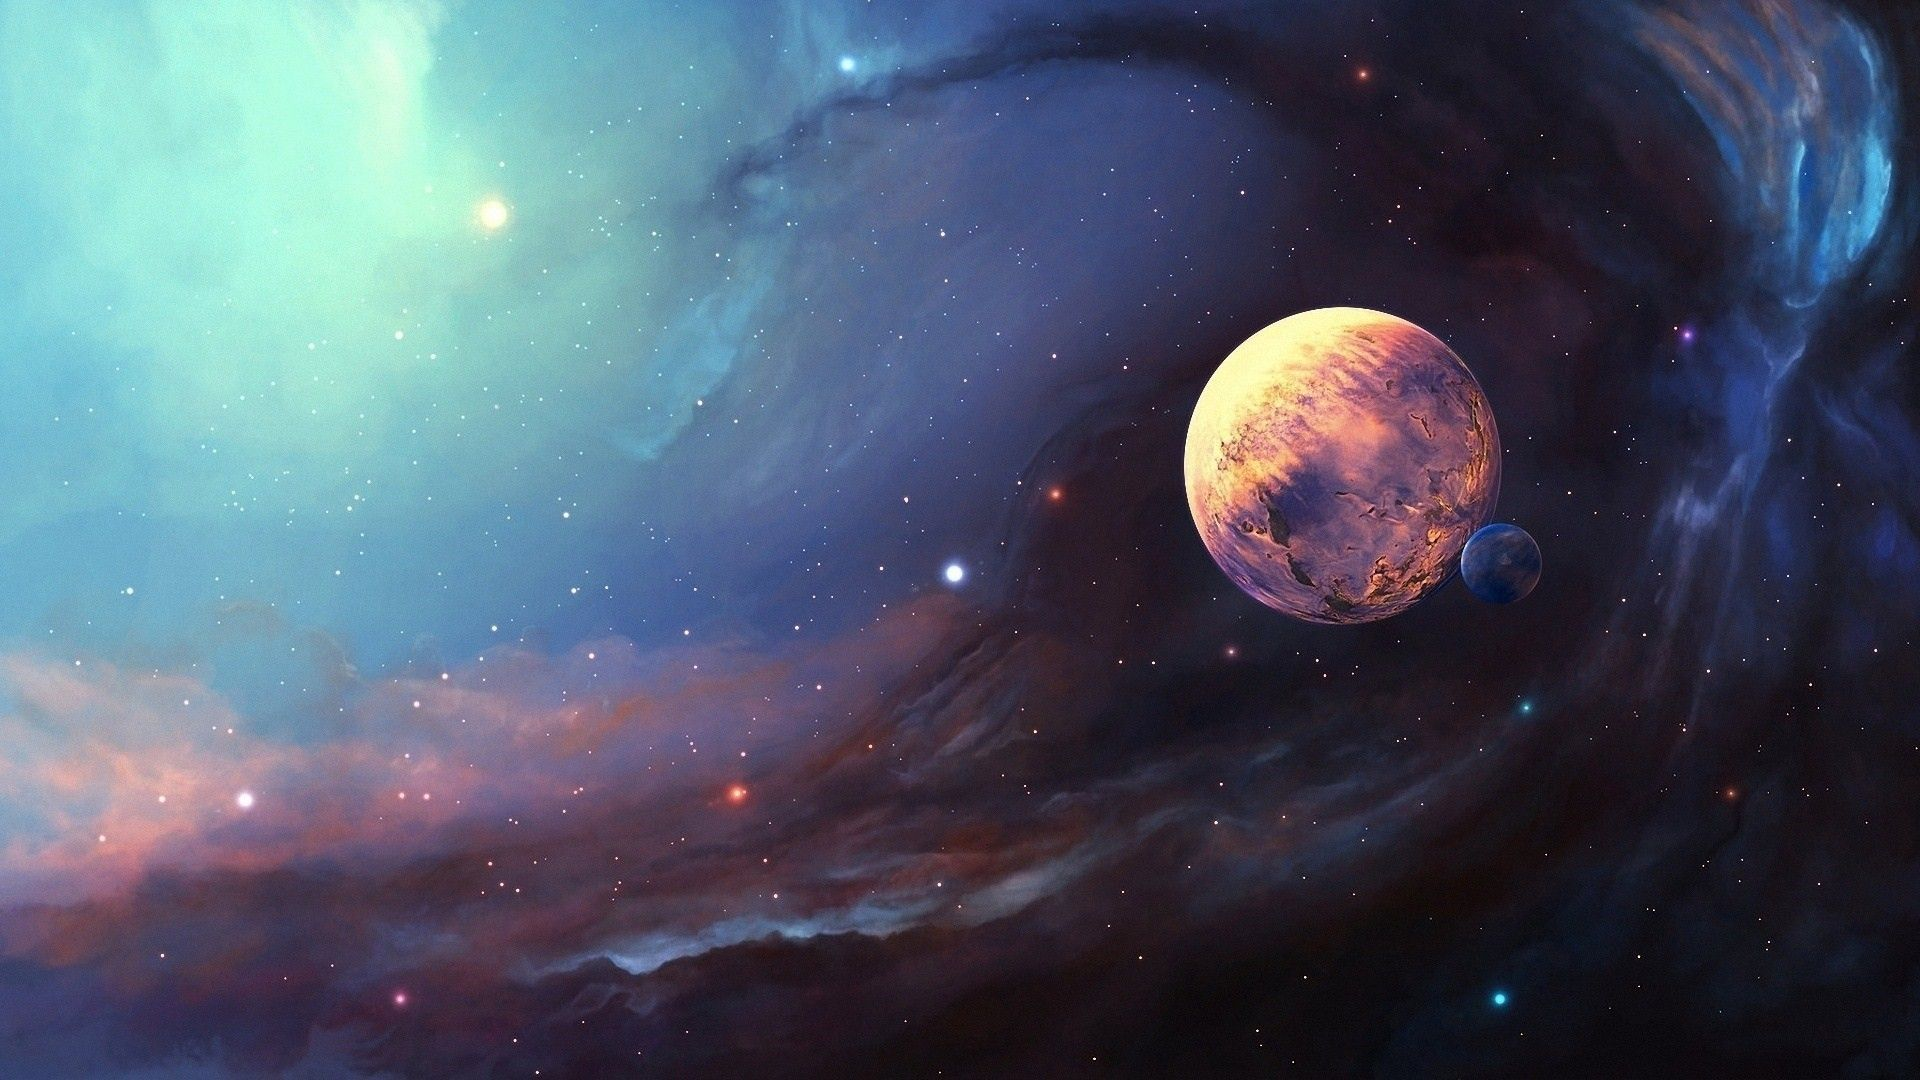 1920x1080 5k Space Wallpaper 25 Images Moon Stars Art Planet Pictures Nebula